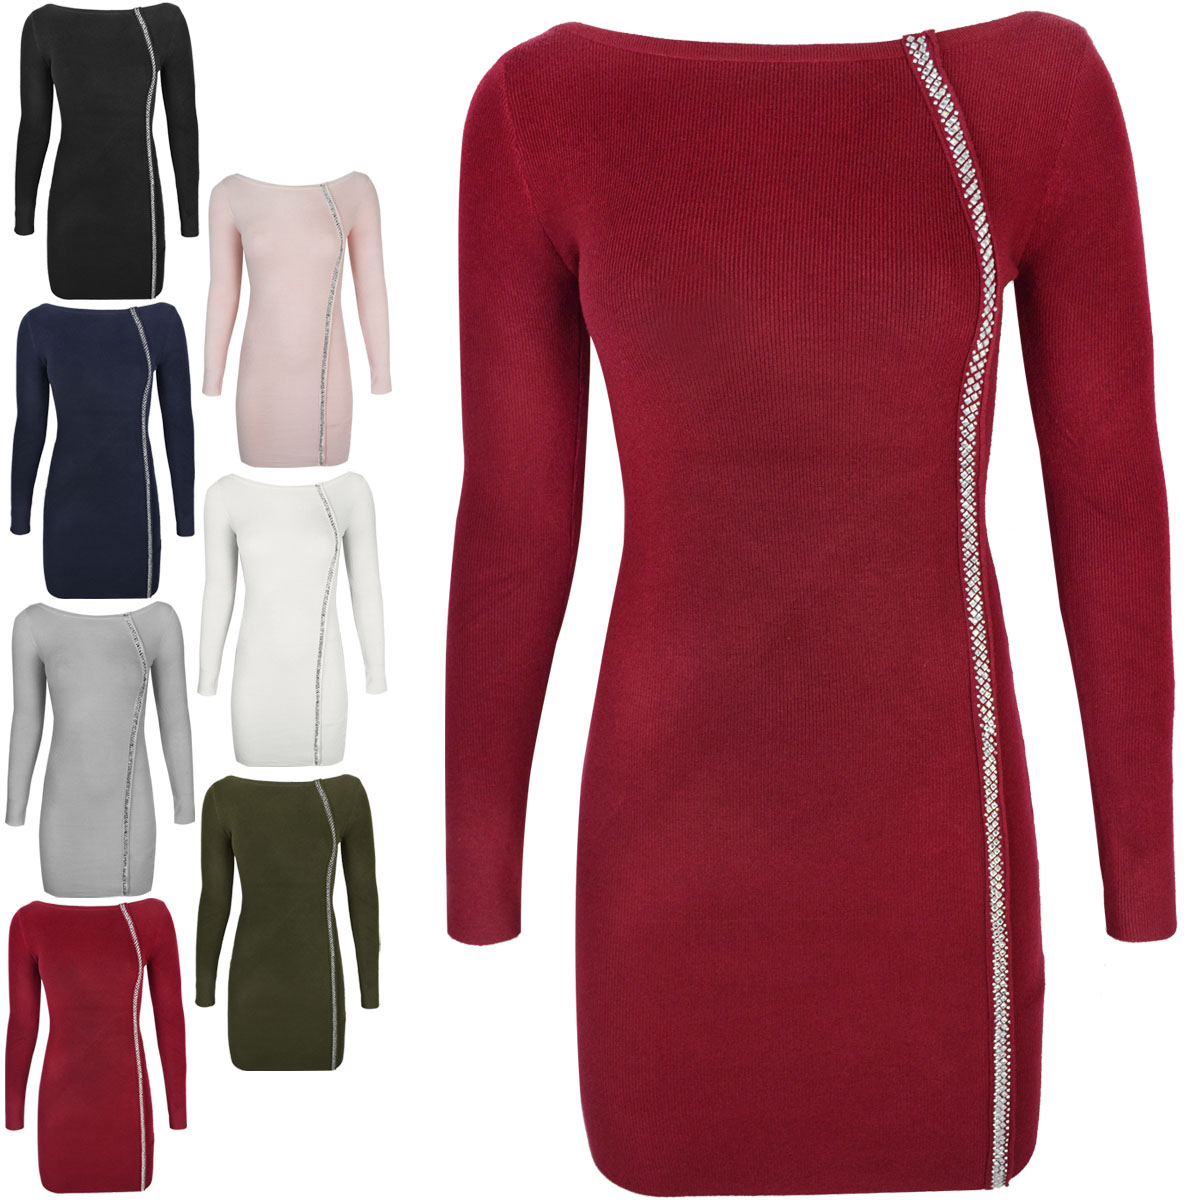 Femme-Femmes-Moulante-Robe-Pull-Jewel-Embelli-Stretch-Fit-Sweater-Taille